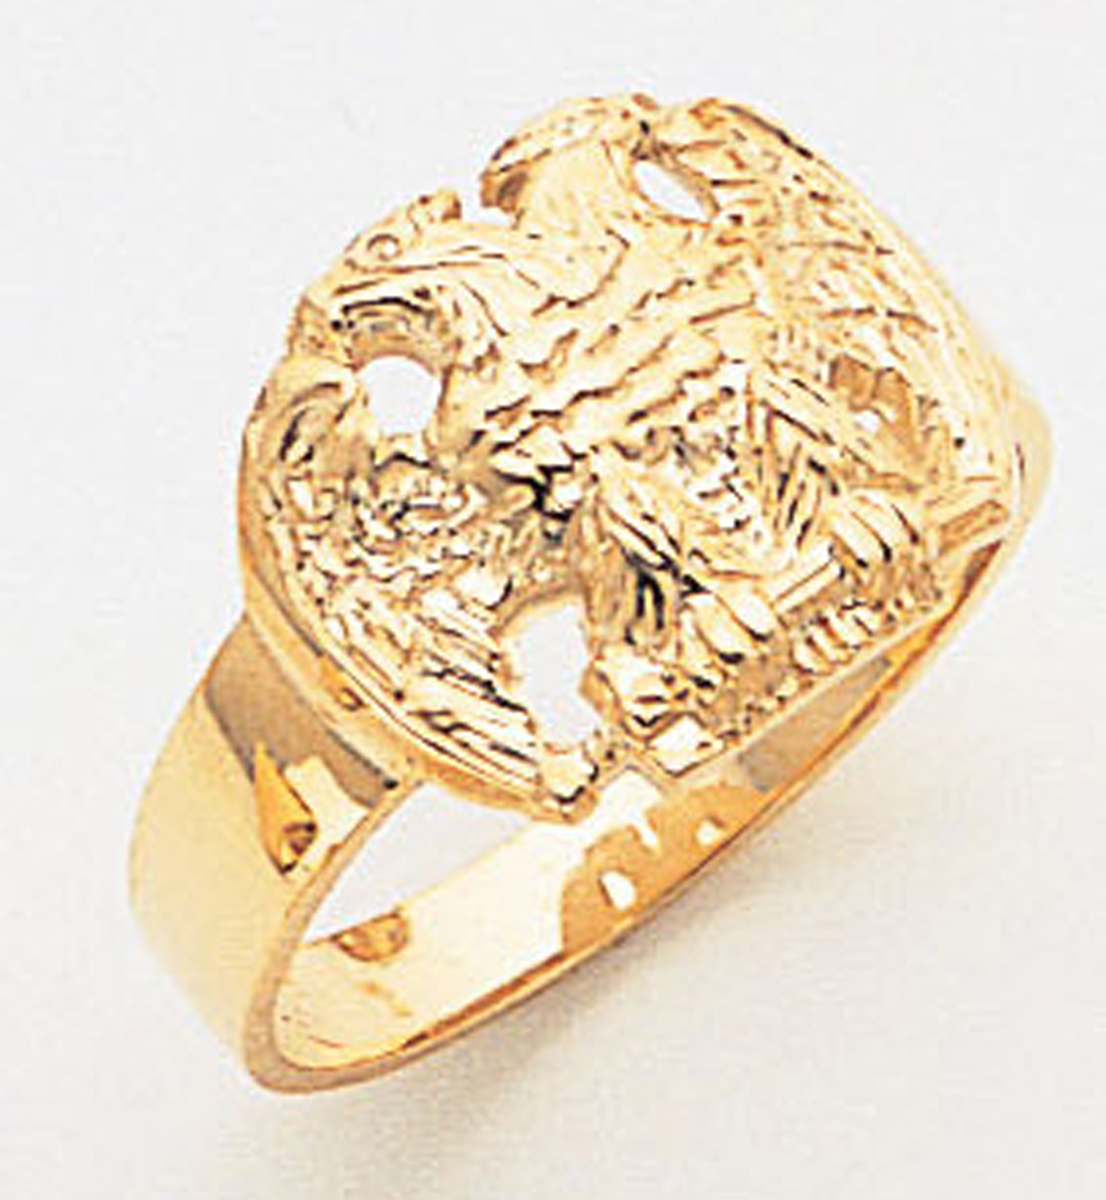 Masonic 32 Degree Scottish Rite Ring Ring Macoy Publishing Masonic Supply 3357